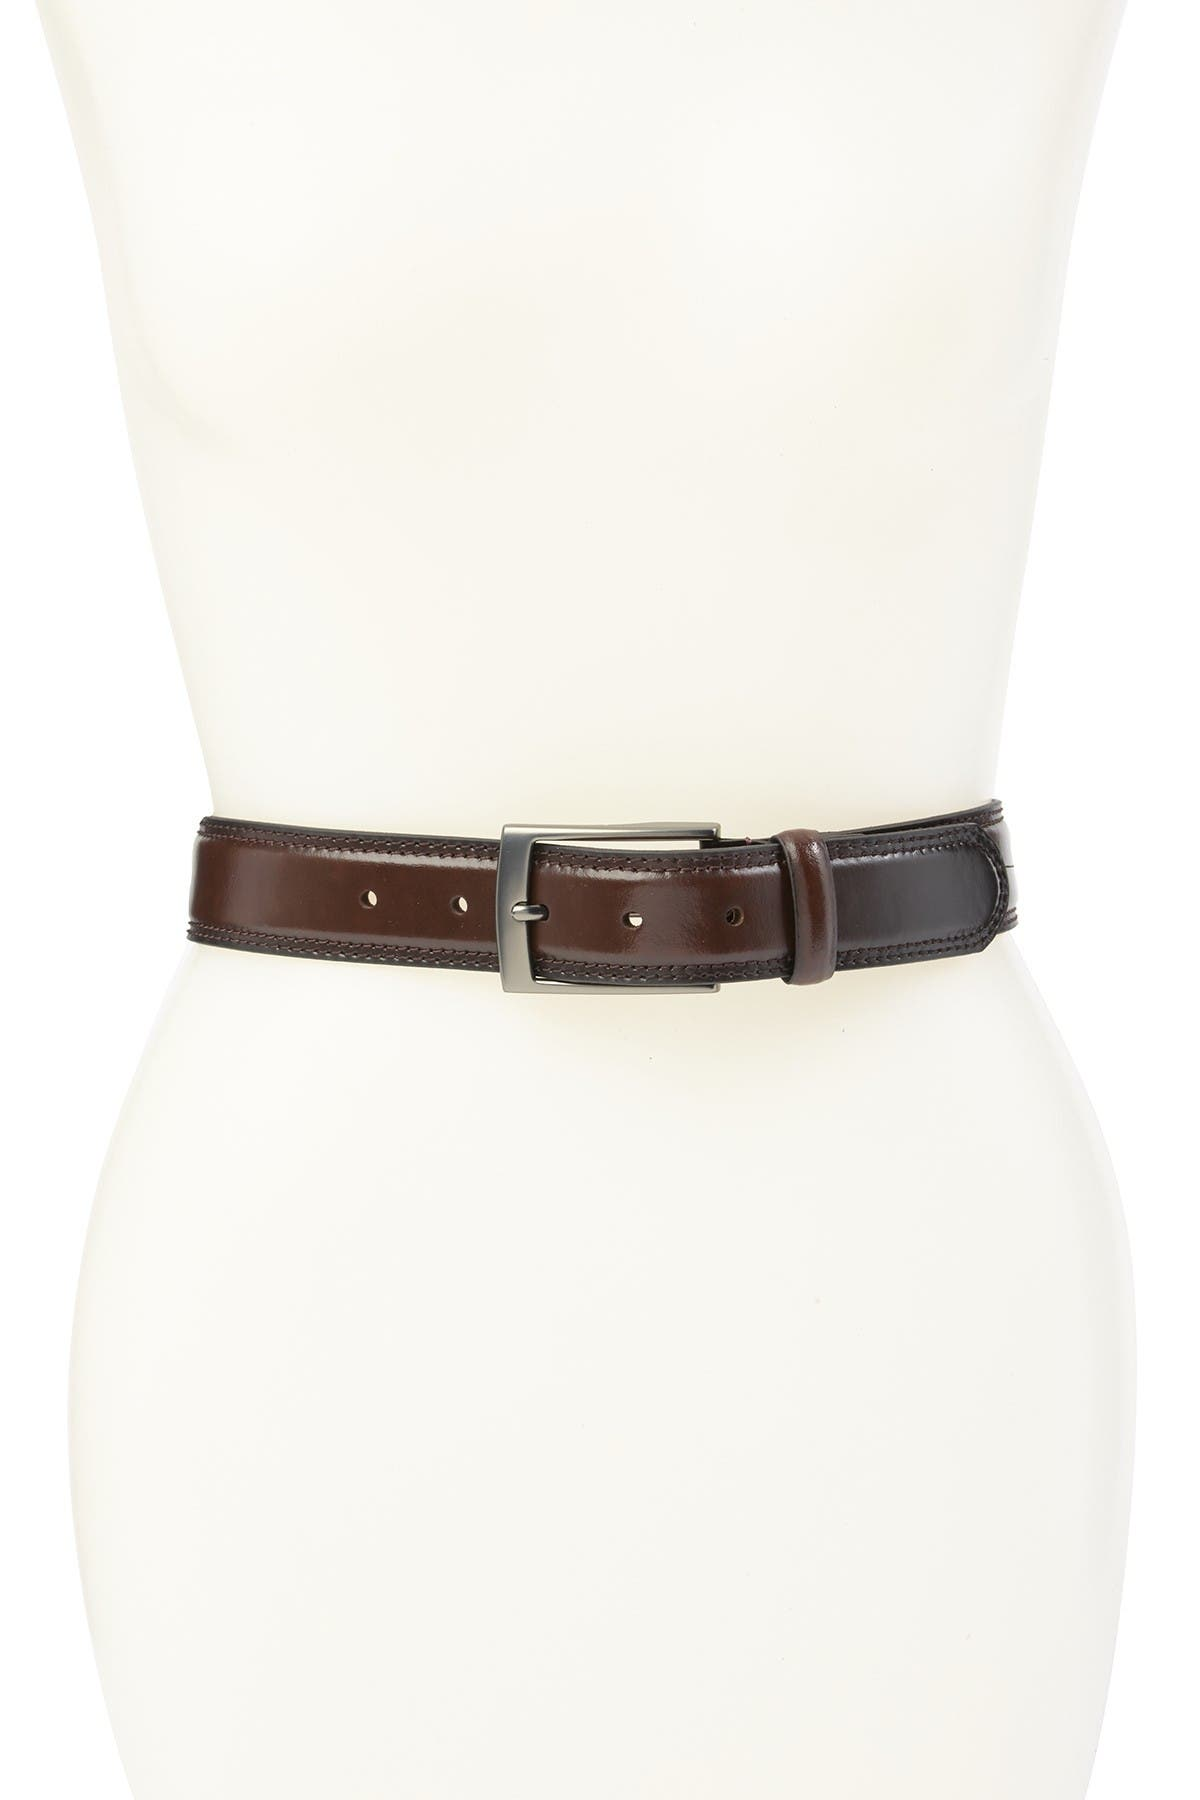 Image of BOCONI Embossed Leather Belt